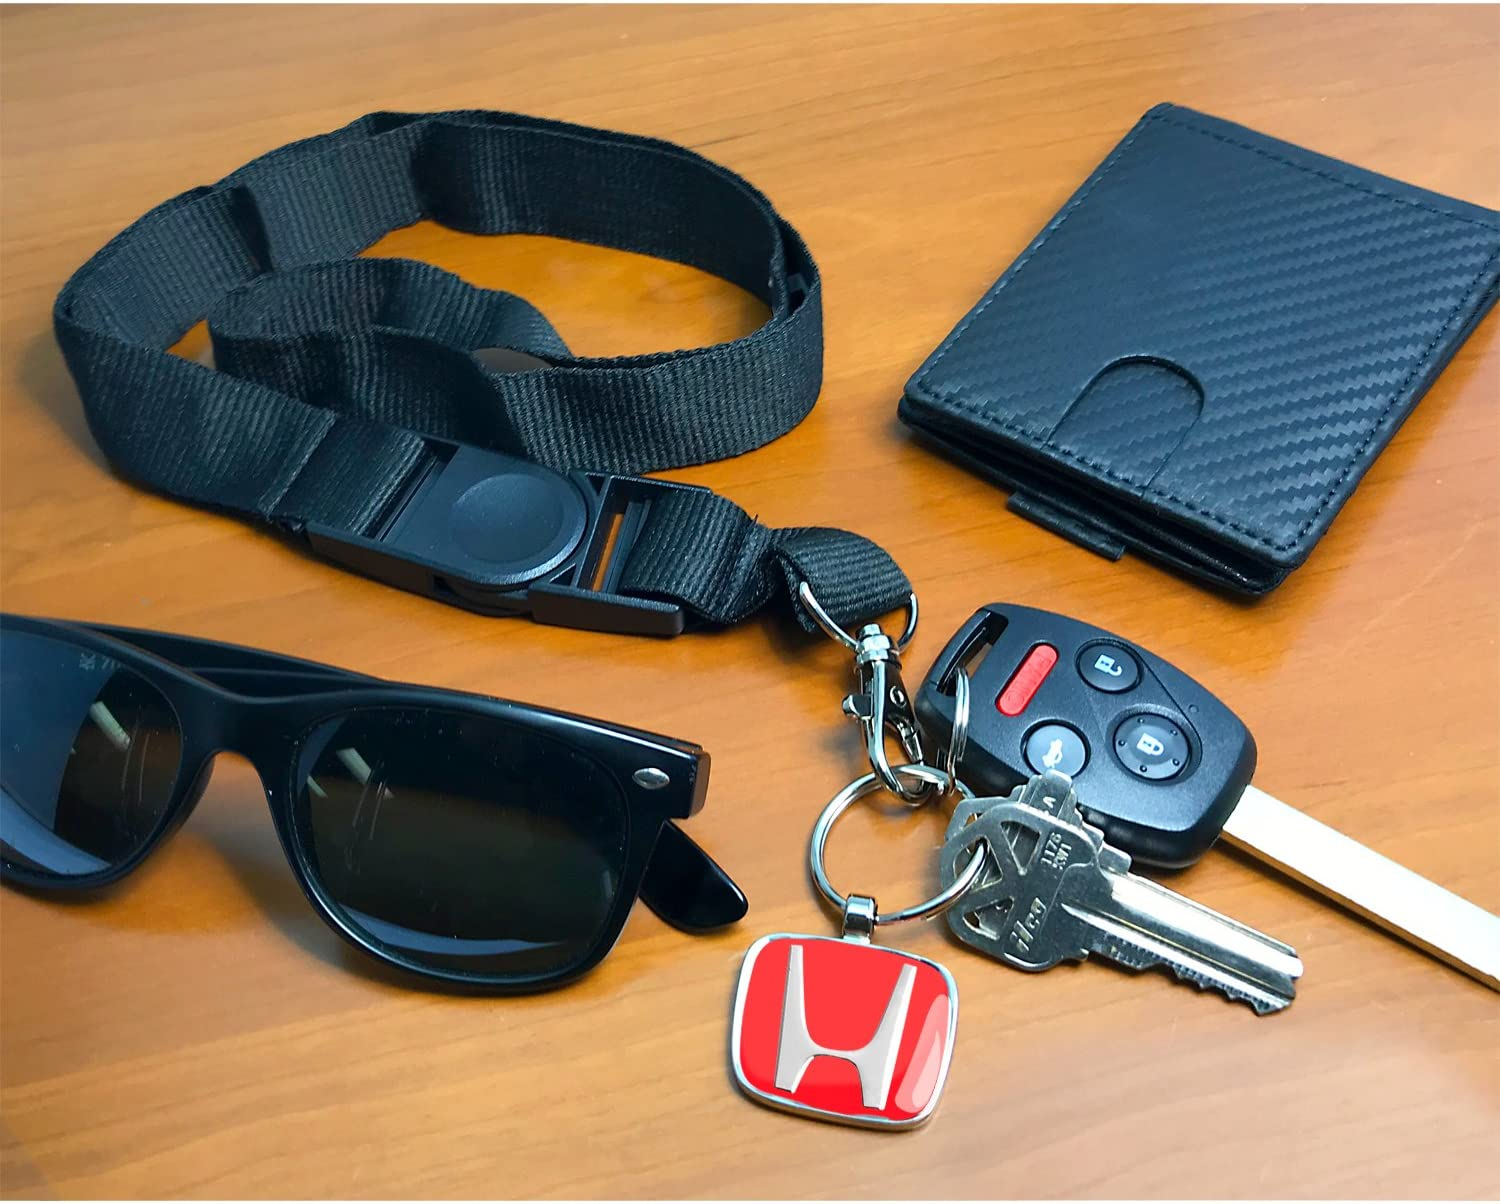 Black Nylon Lanyard with Red H Logo Key Charm Honda Civic Si iPick Image